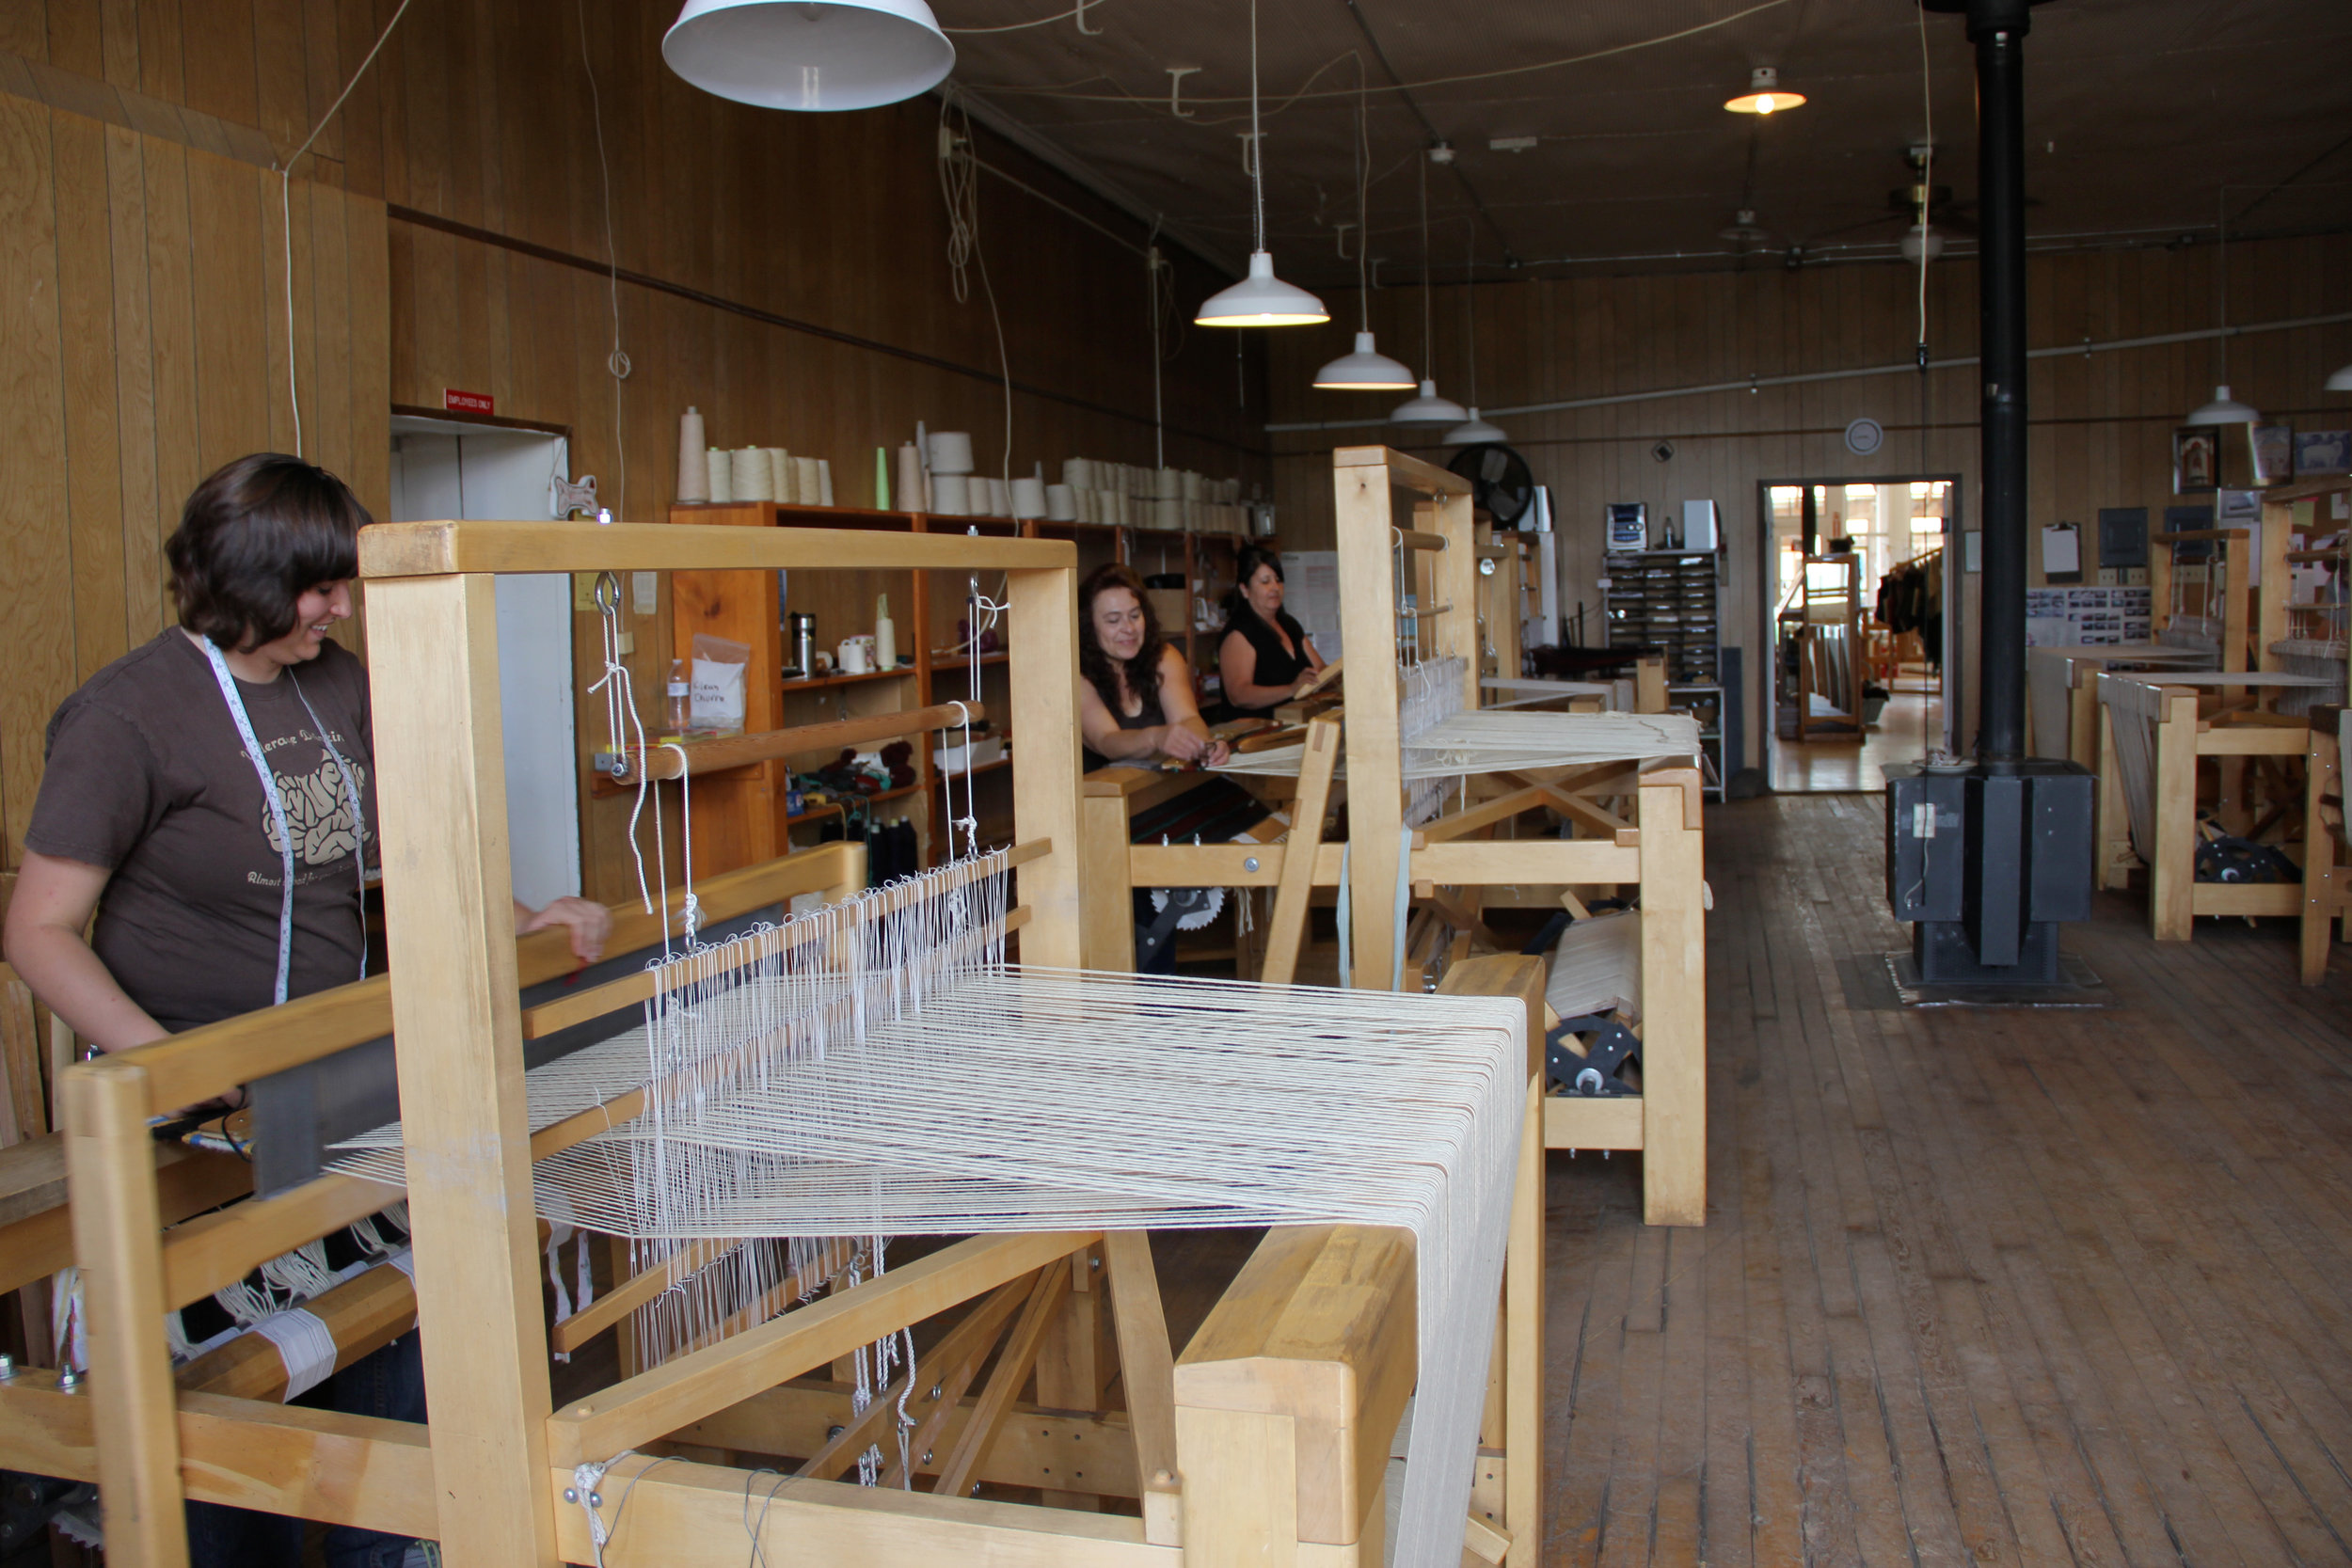 L-R: Aubrey, Sophia and Mary weave on the Tierra Wools looms